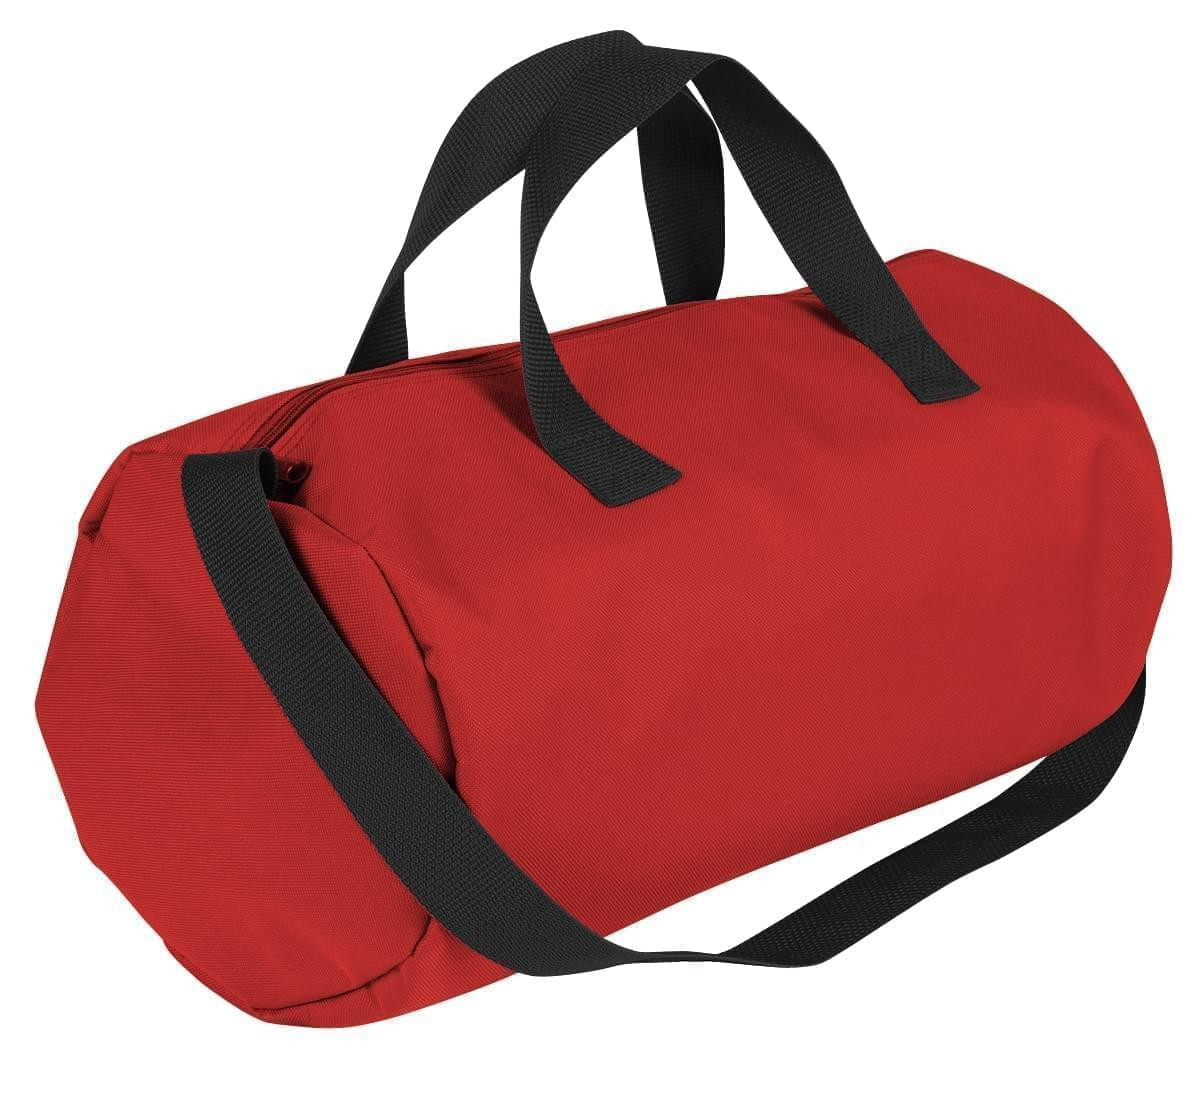 USA Made Nylon Poly Gym Roll Bags, Red-Black, ROCX31AAZR